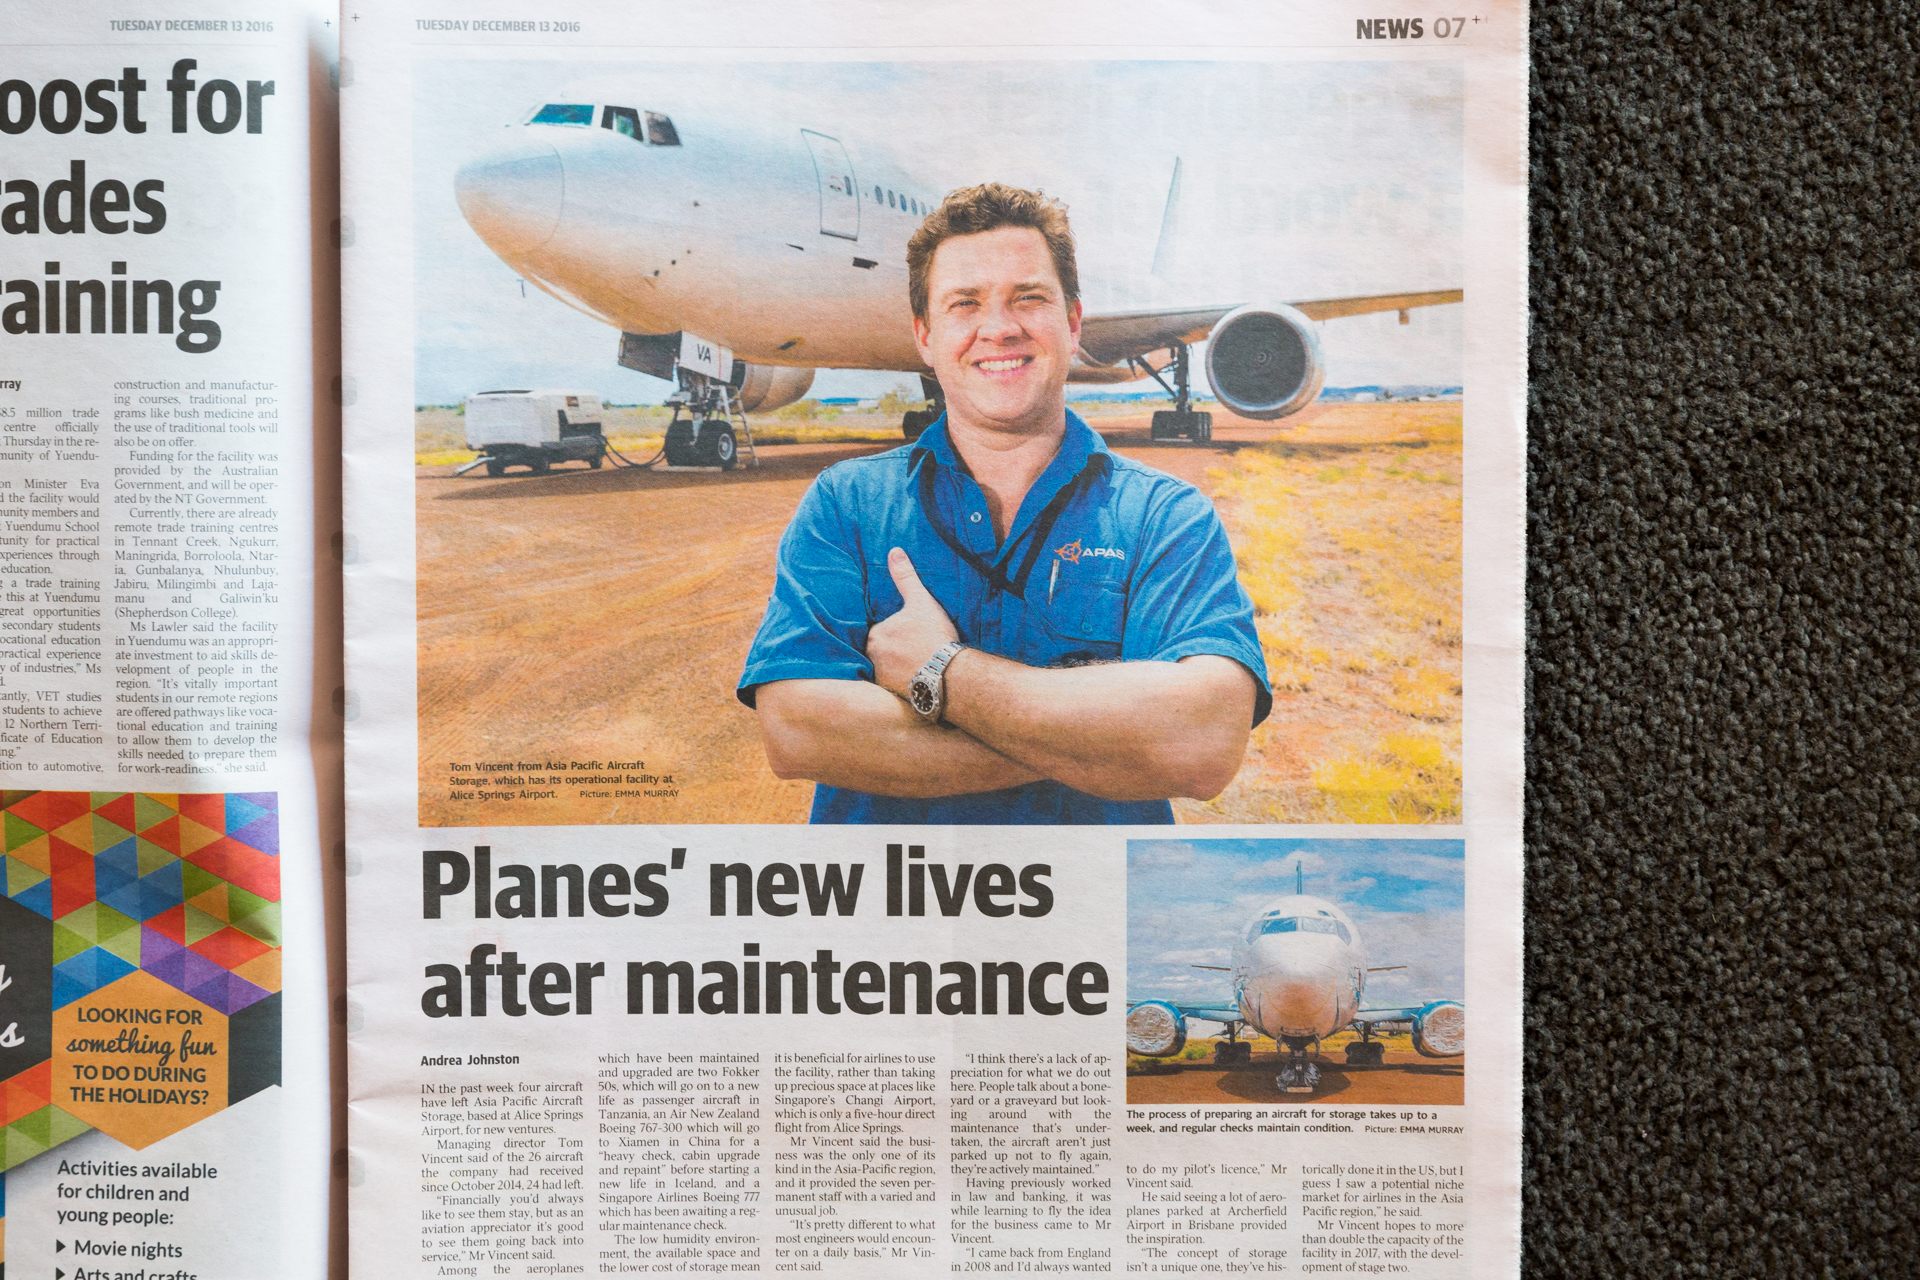 My photo of Tom Vincent, Asia Pacific Aircraft Storage Managing Director, in front of a plane in storage at his facility